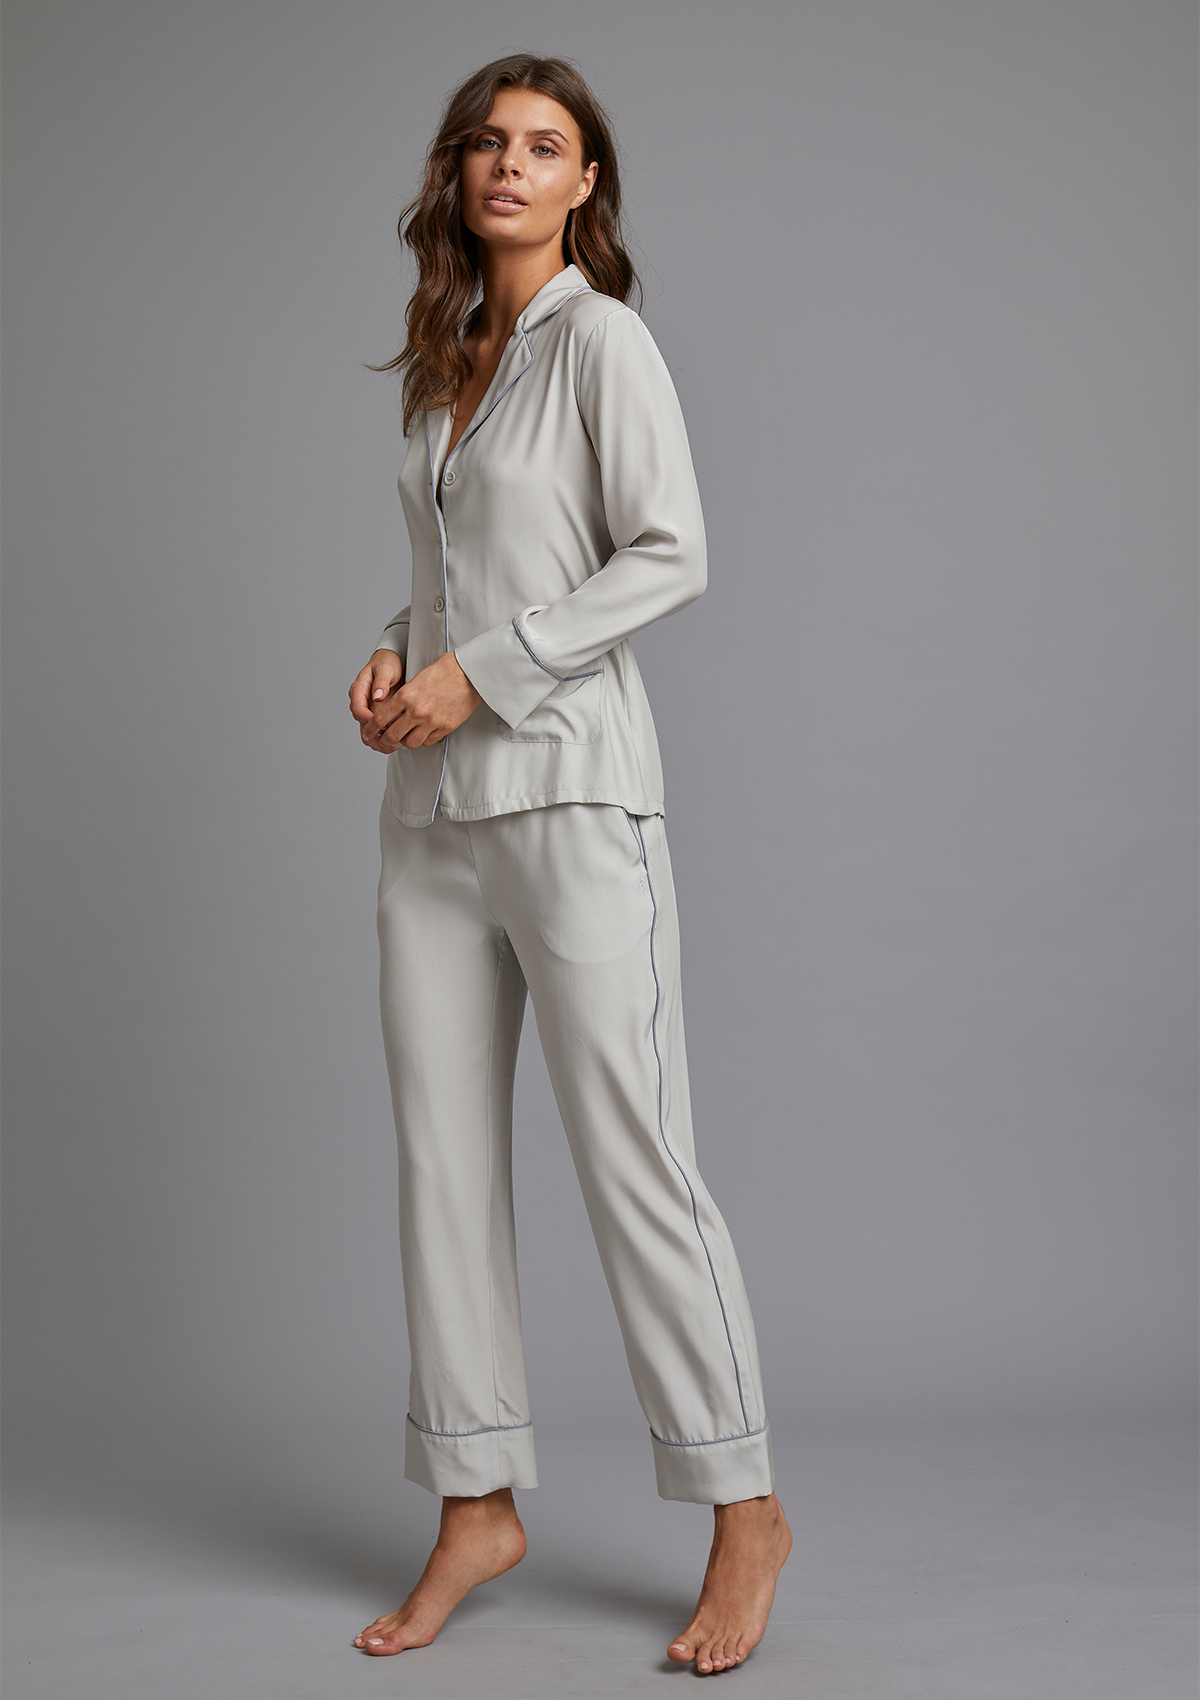 PALOMA PYJAMA SHIRT in MOONLIT